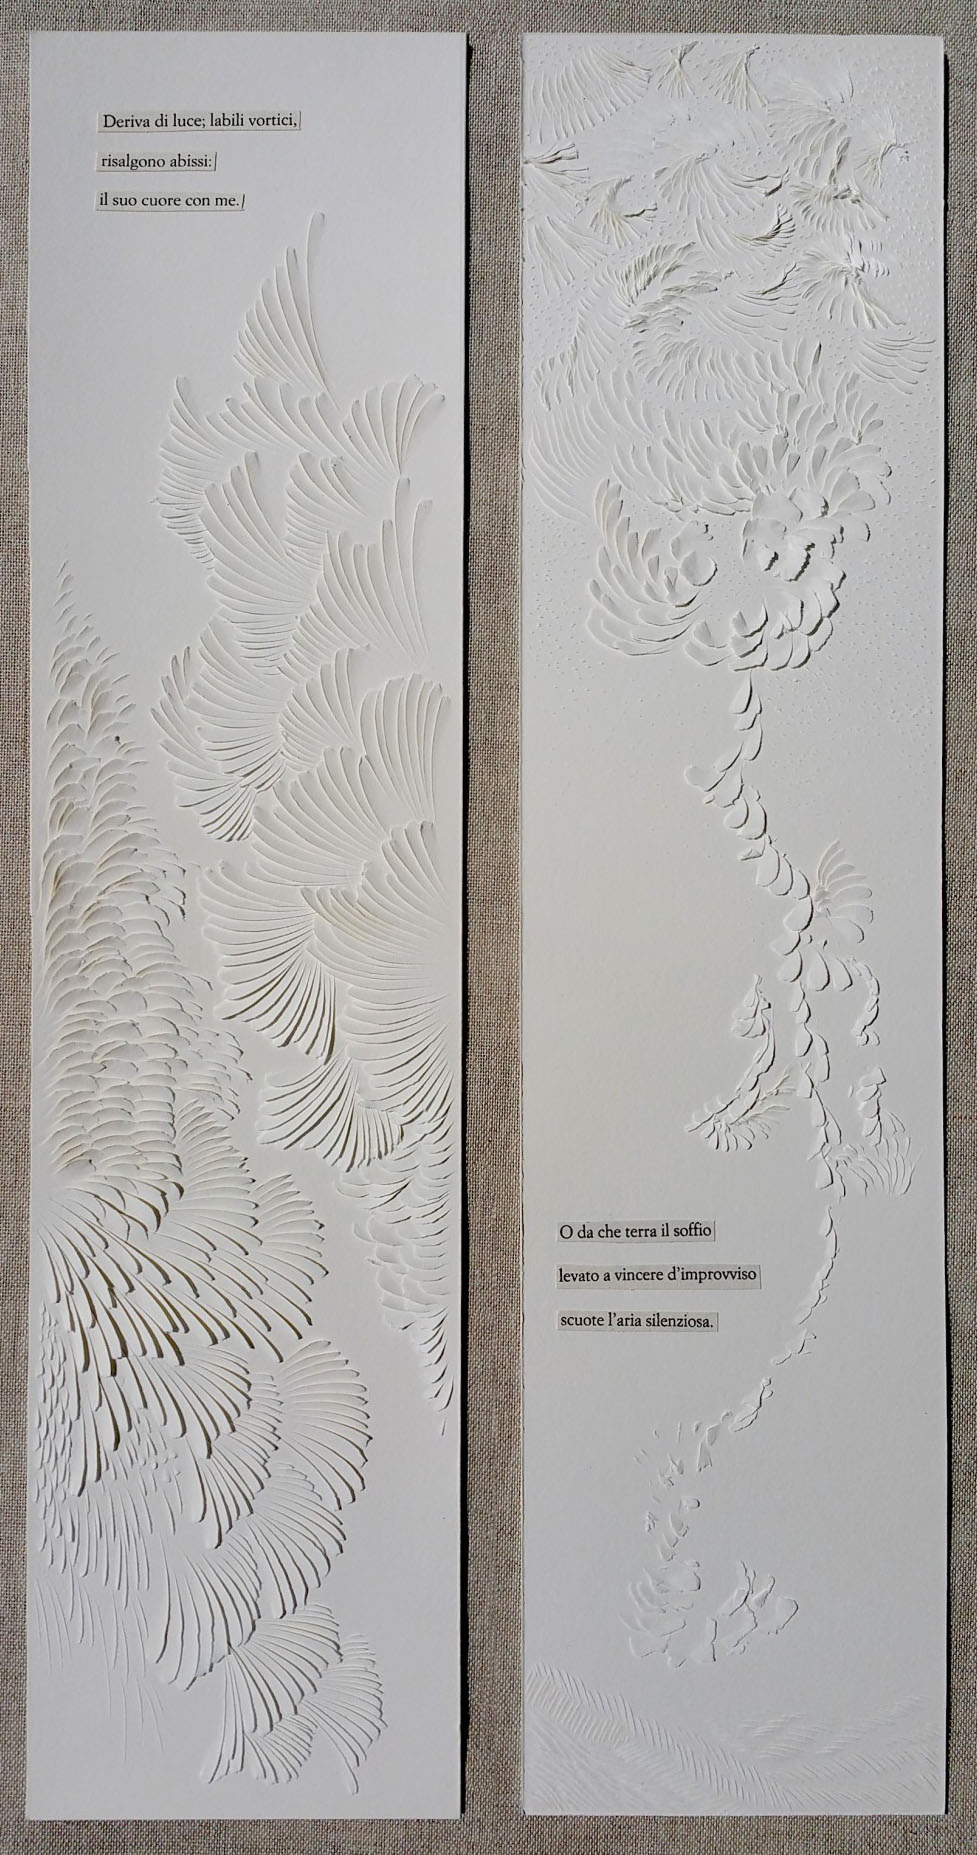 Interview with Domitilla Biondi, Carved Paper Poetry Artist - Quasimodo Remixed